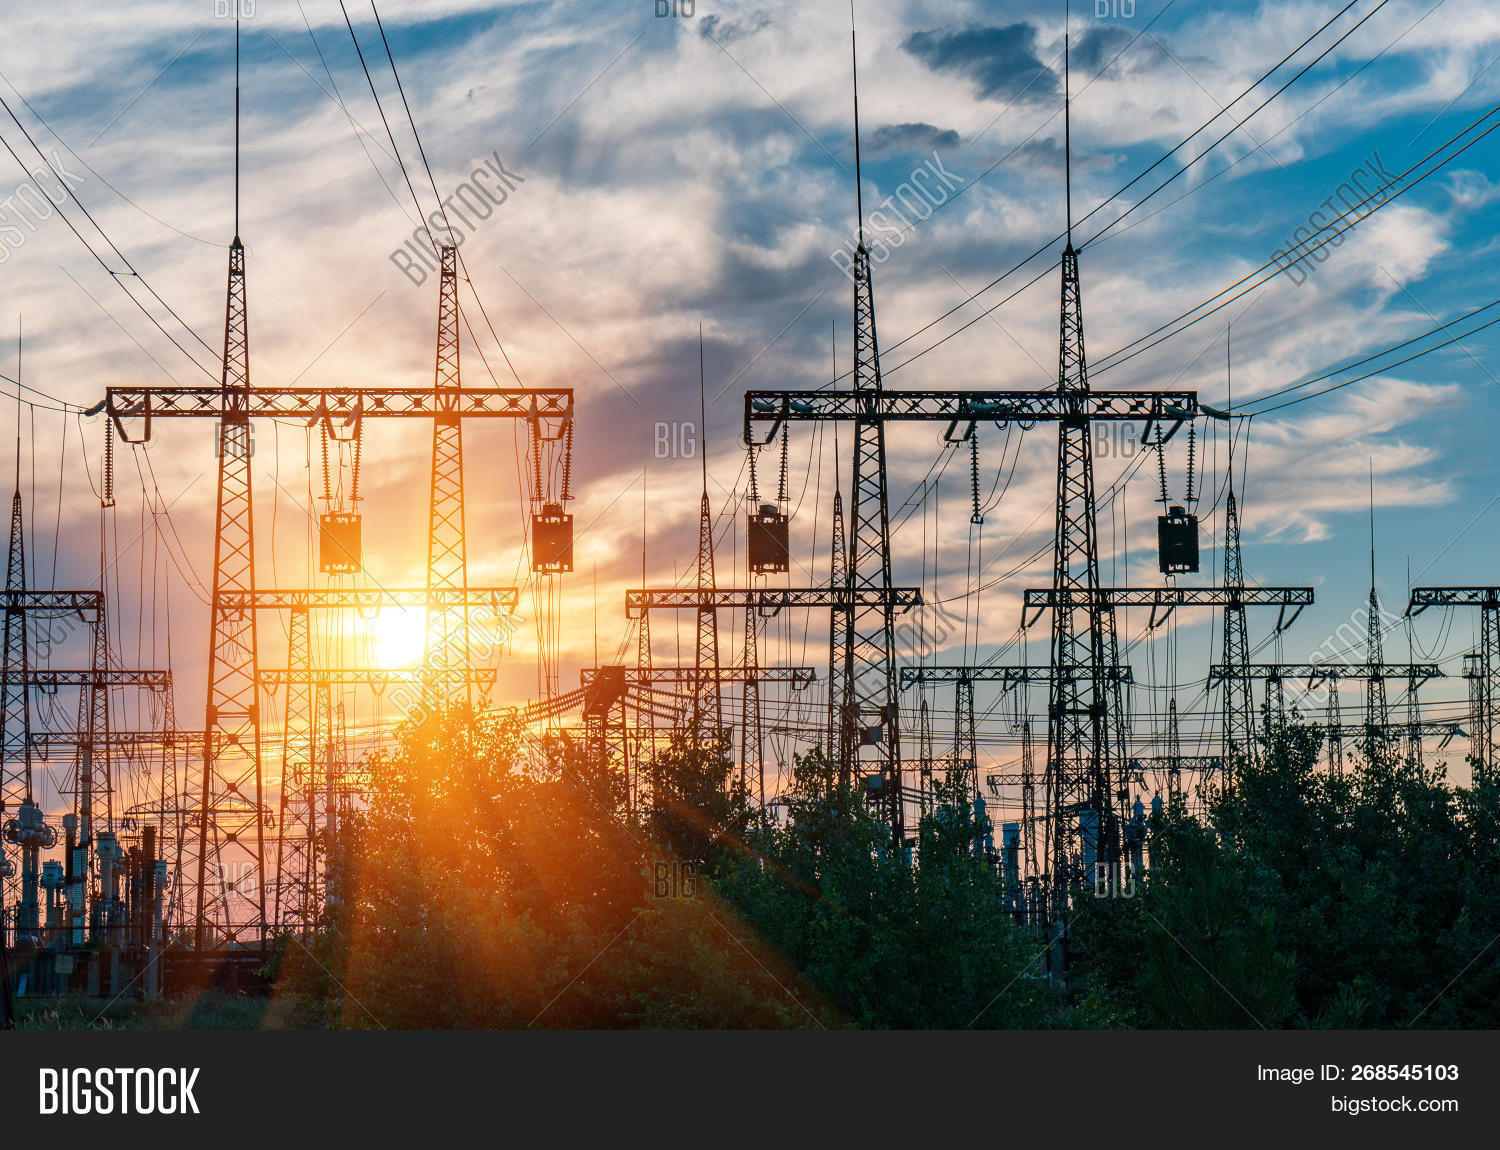 cable,current,distribution,electric,electrical,electricity,energy,engineering,equipment,grid,high,industrial,industry,infrastructure,lines,plant,power,provider,pylon,sector,station,structure,substation,supply,tariff,technology,towers,transformer,transmission,volt,voltage,watt,wire